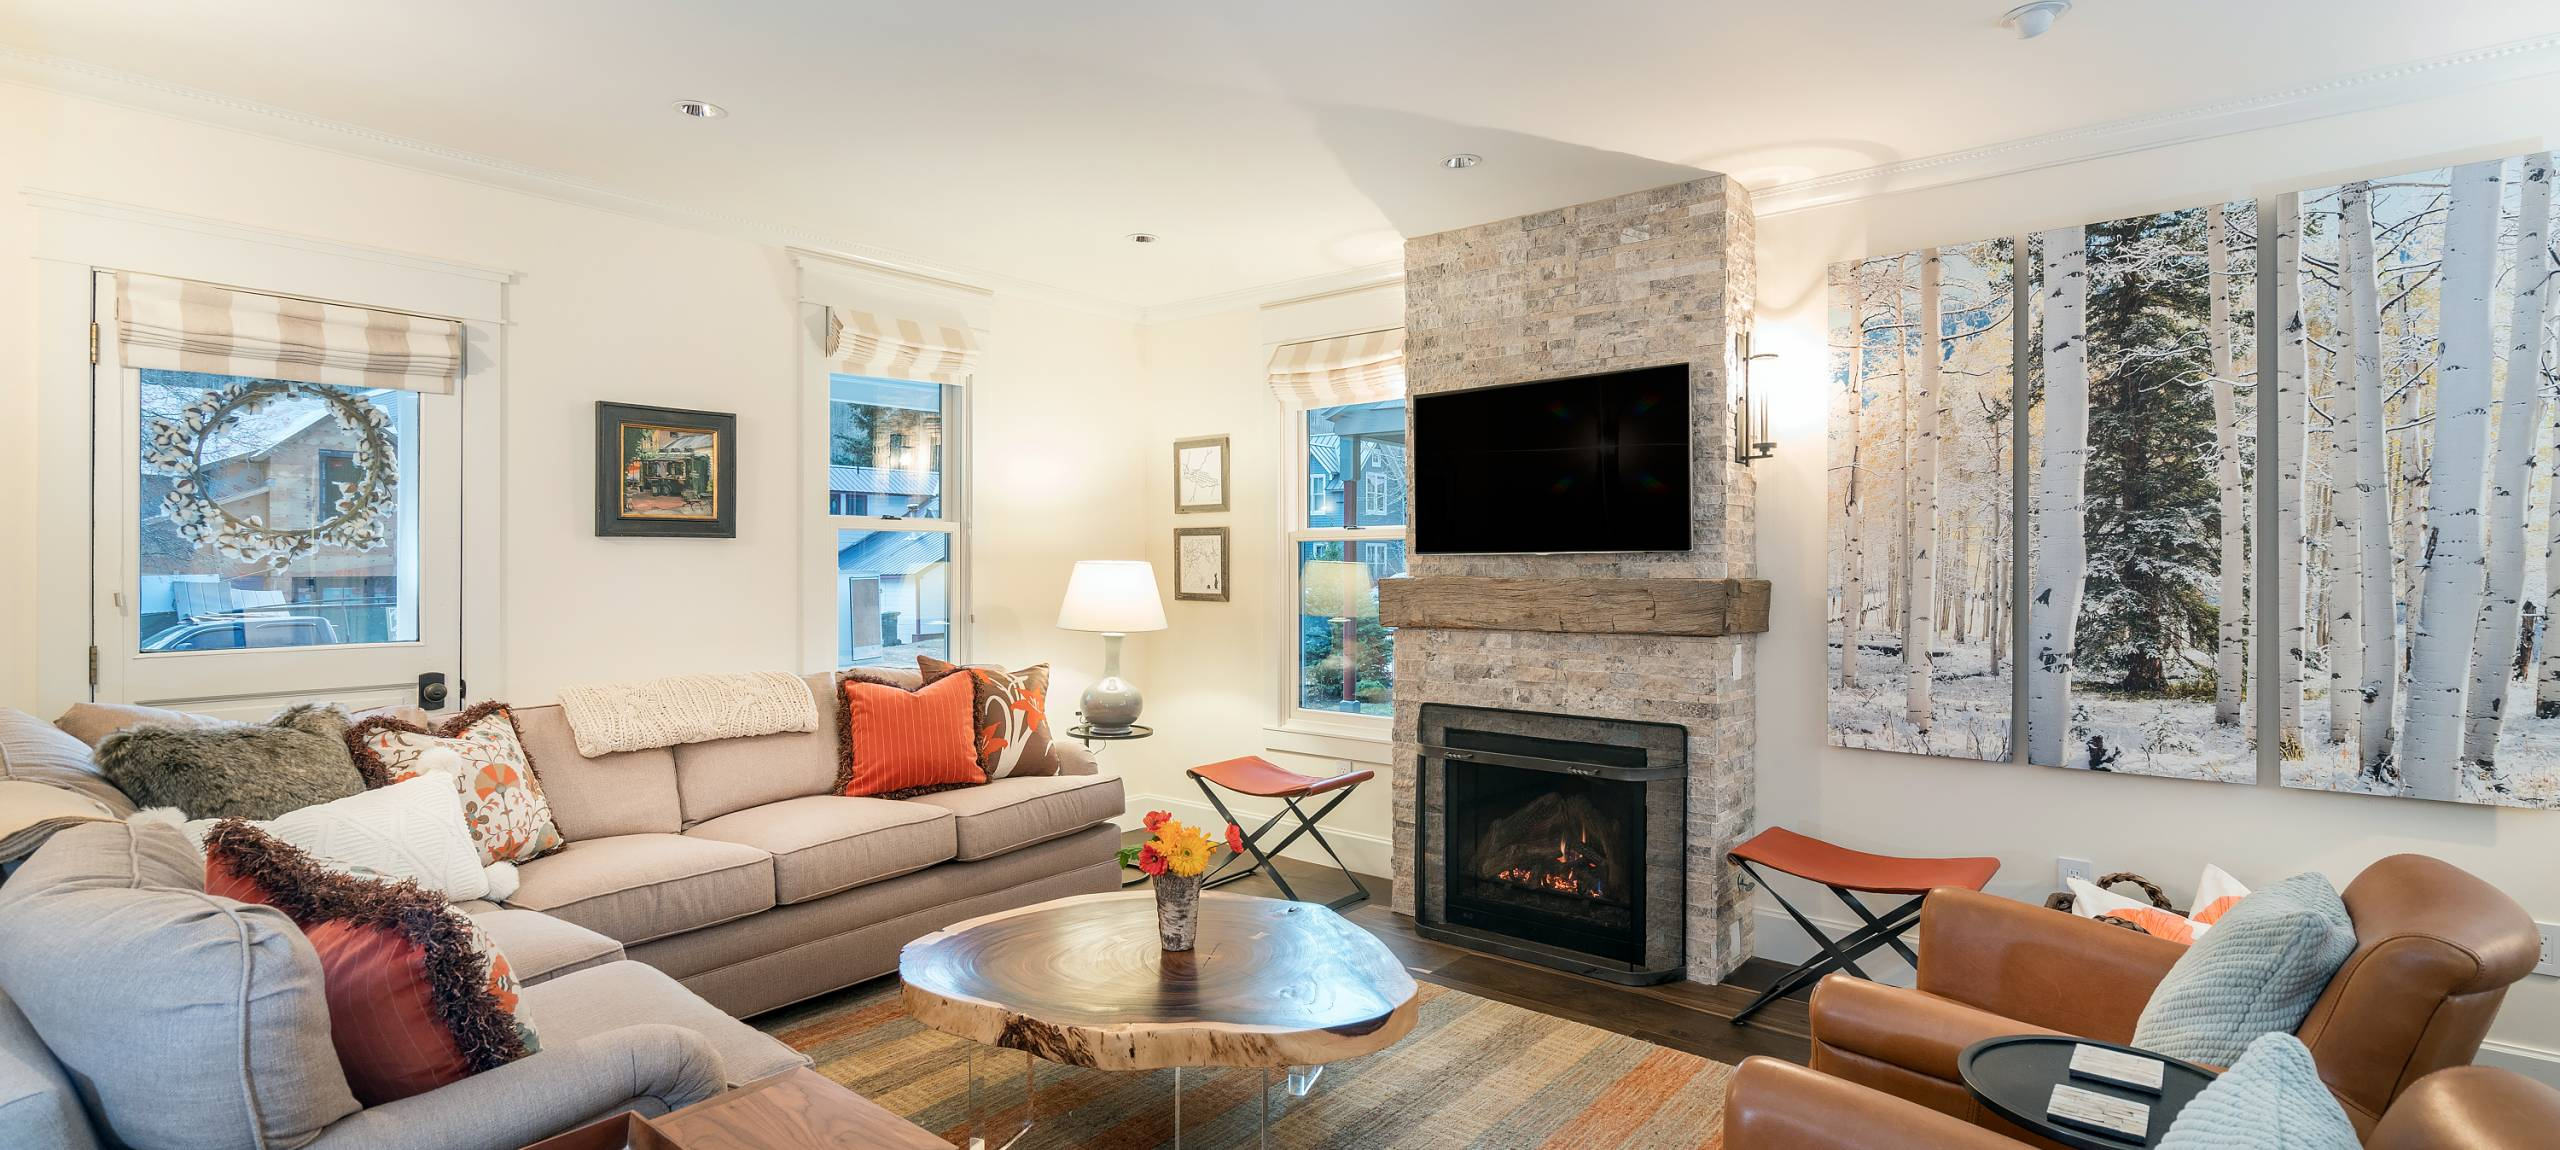 Telluride-rentals-the-bridal-veil-living-area-fireplace